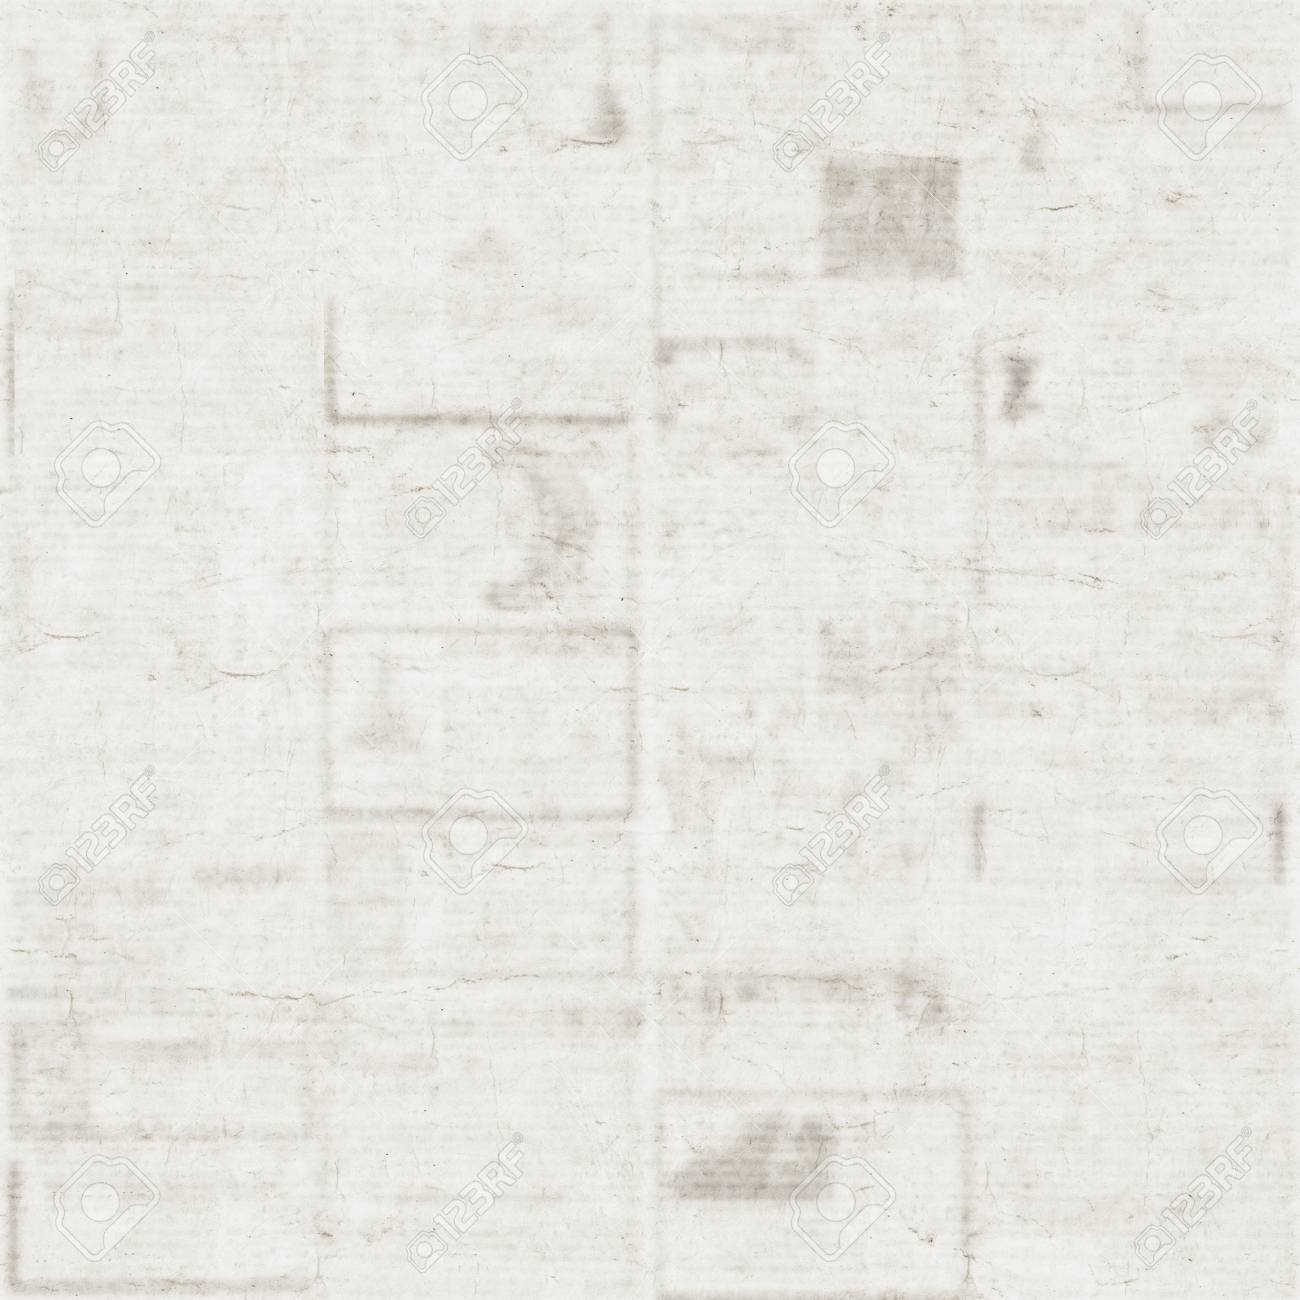 old newspaper texture background. blurred vintage newspaper